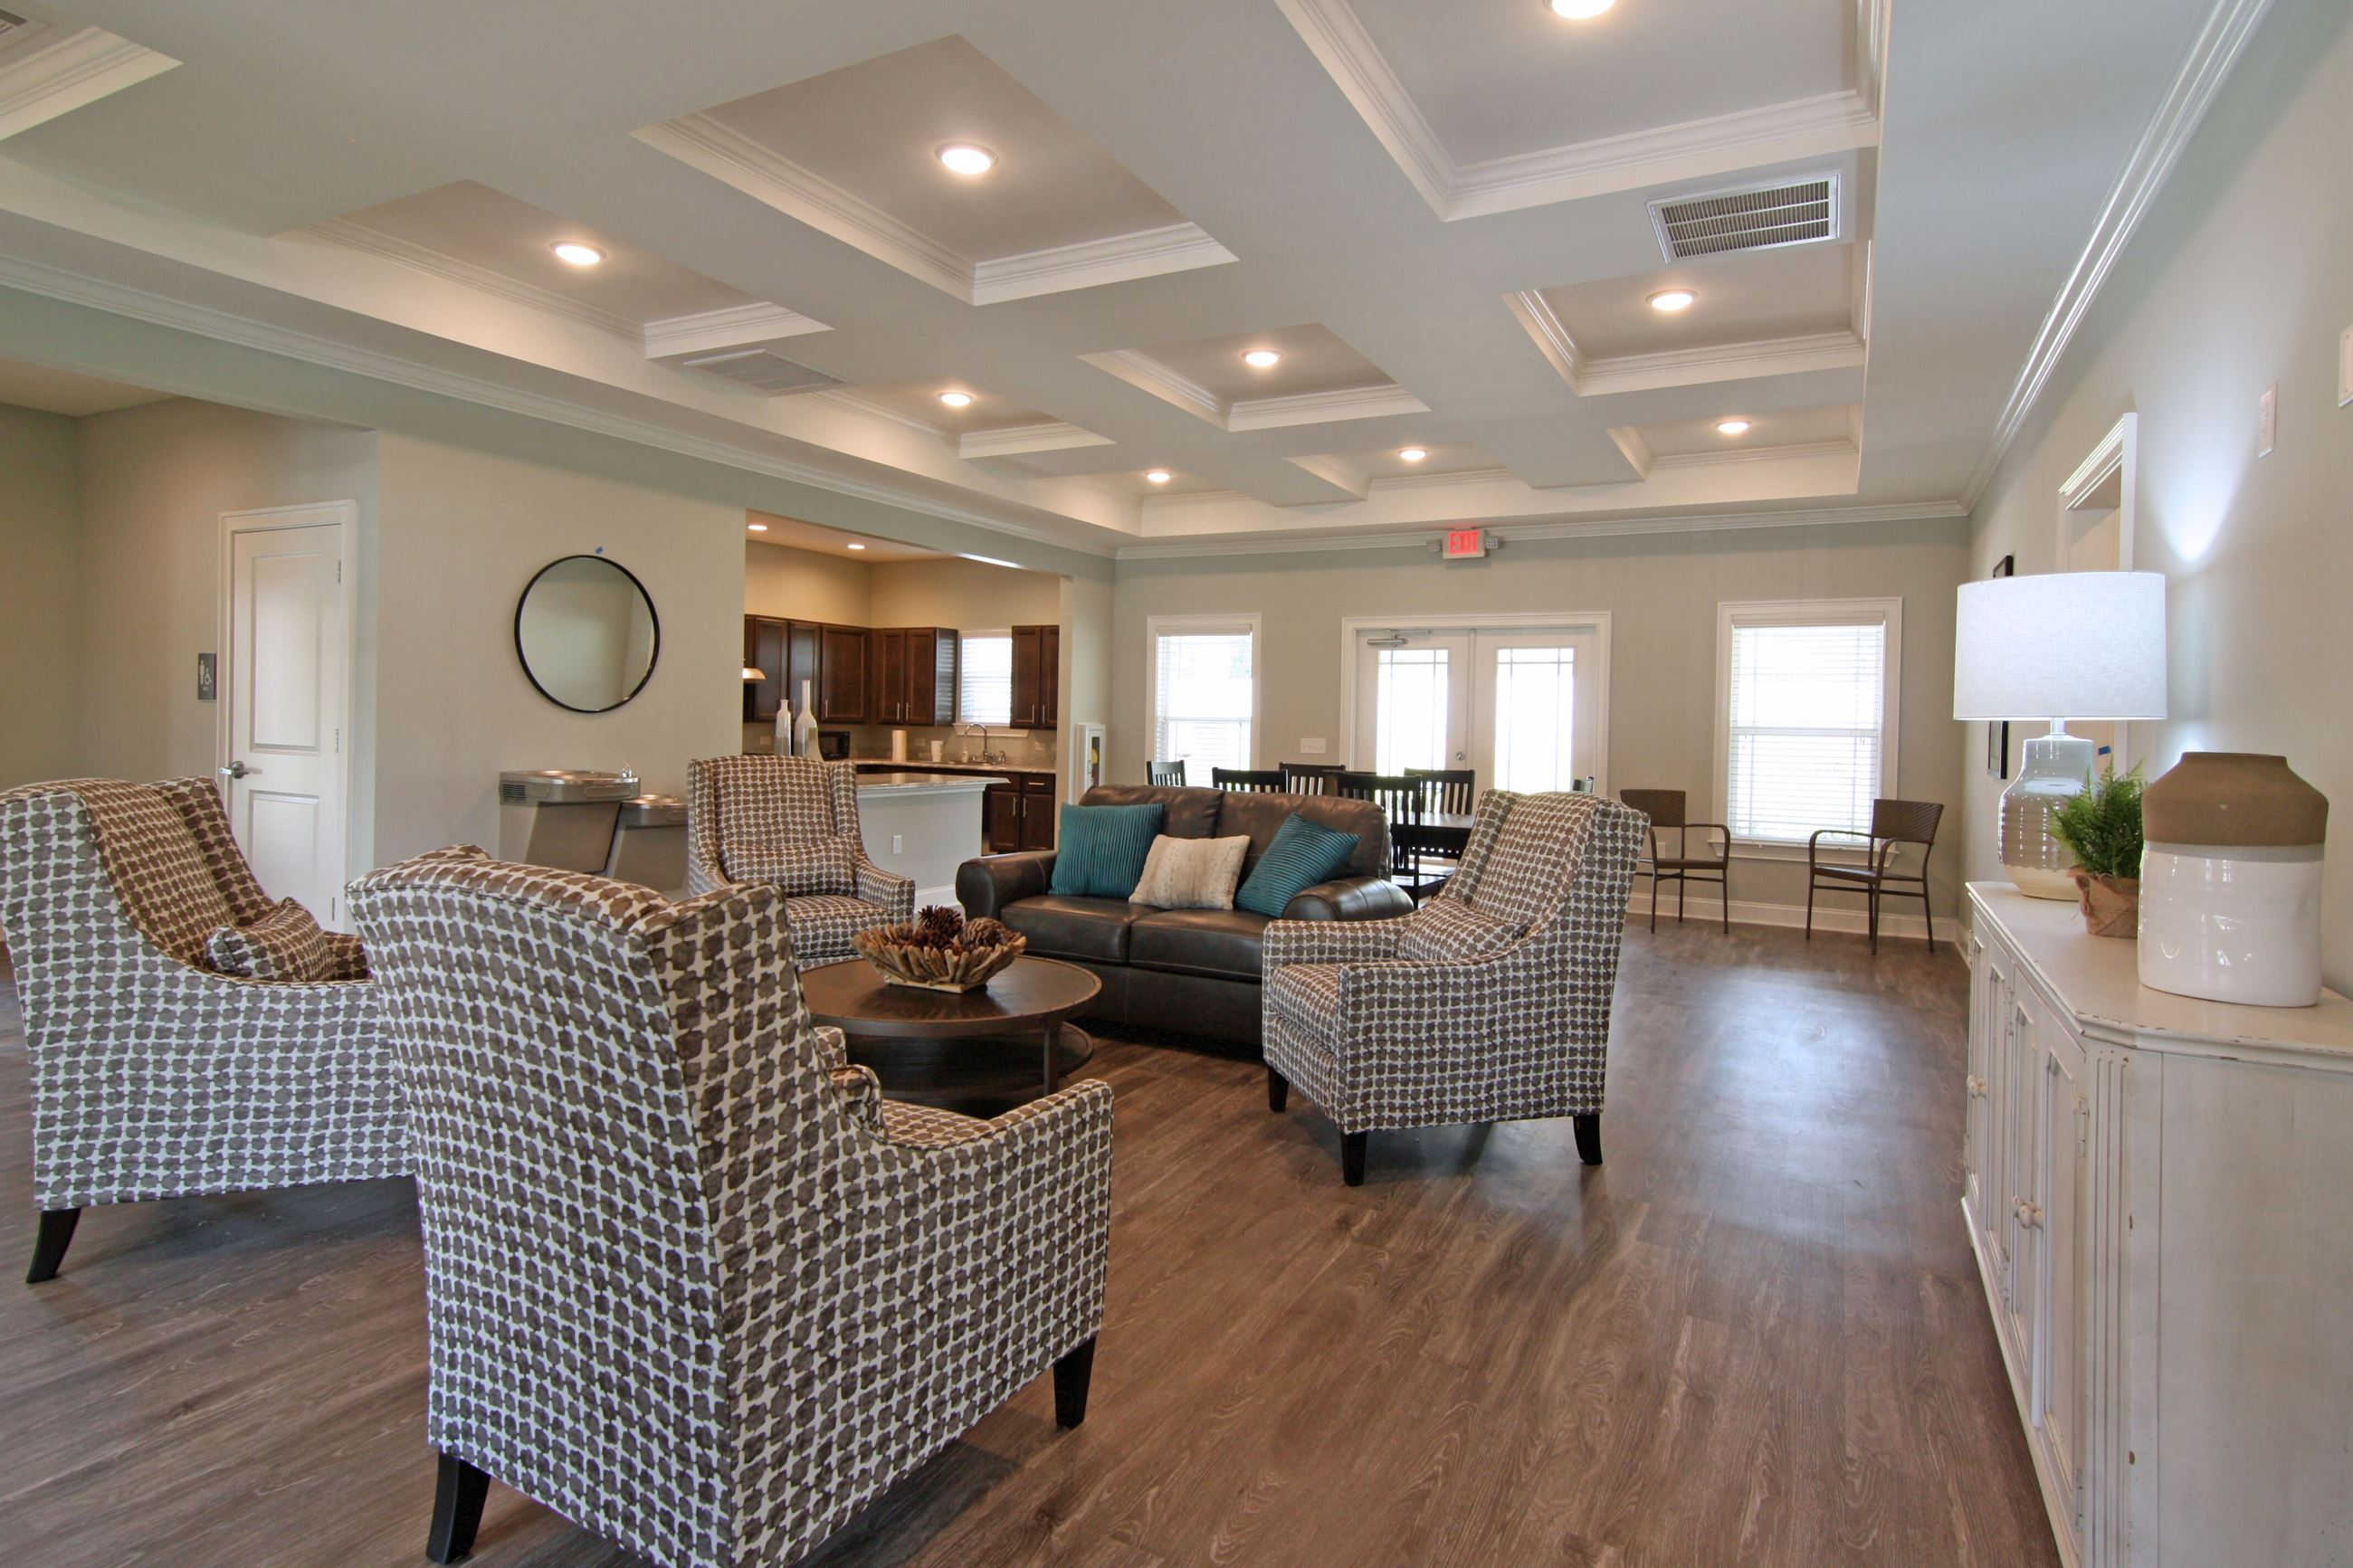 Example Image for Glen Oaks Apartments - view into living room with furniture options